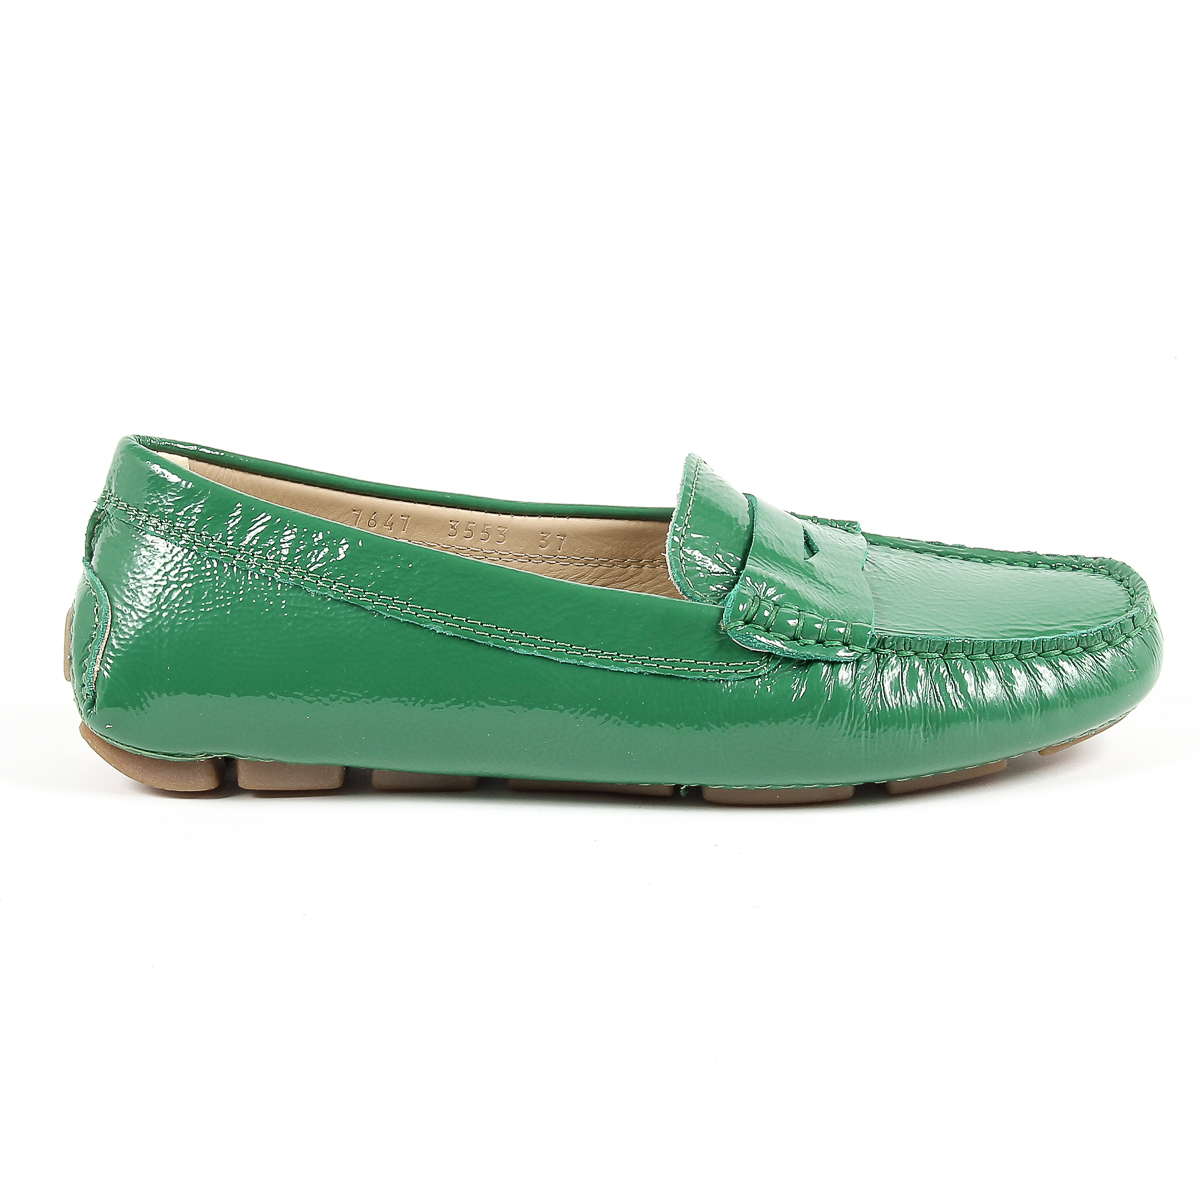 Primary image for V 1969 Italia Womens Loafer Green AMALFI